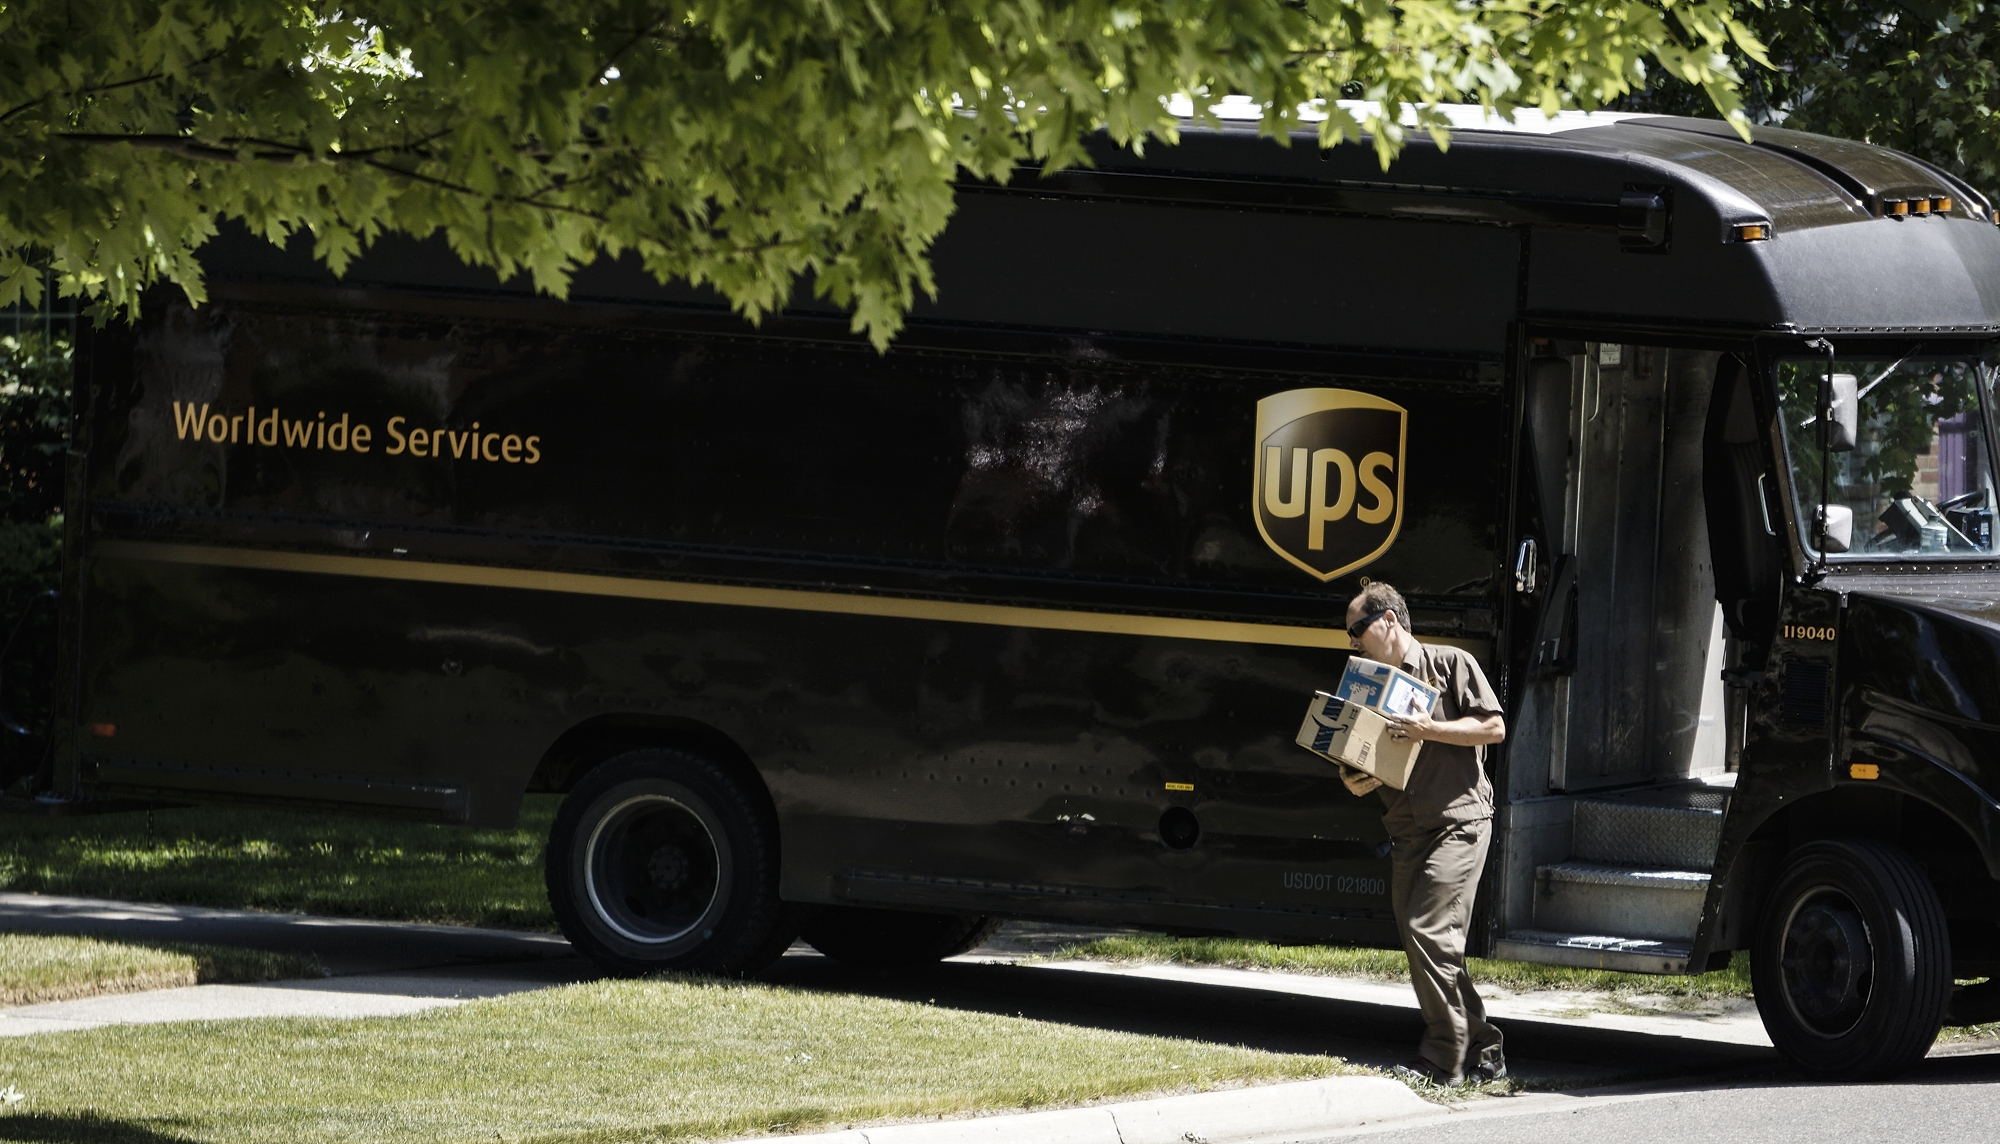 UPS Disability Discrimination Lawsuit